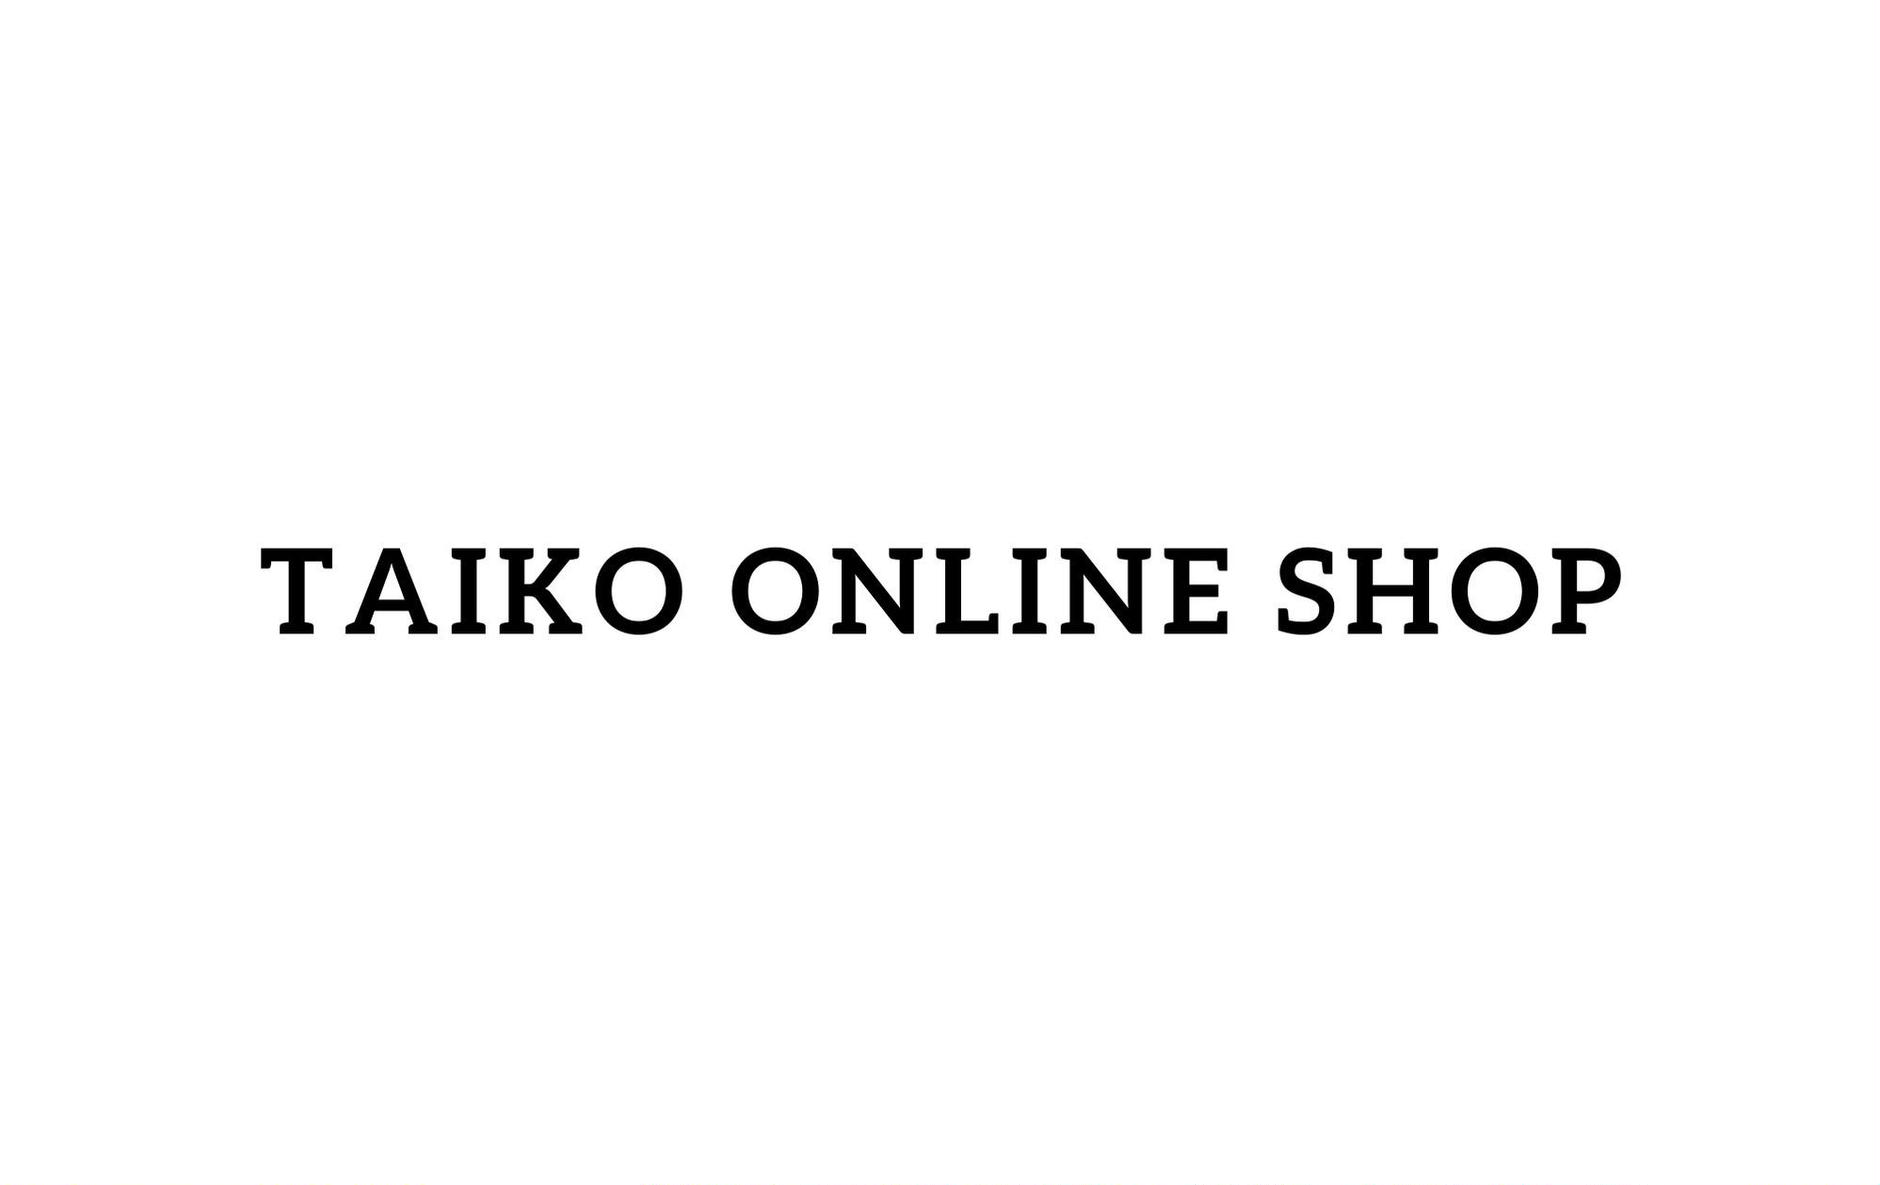 TAIKO ONLINE SHOP